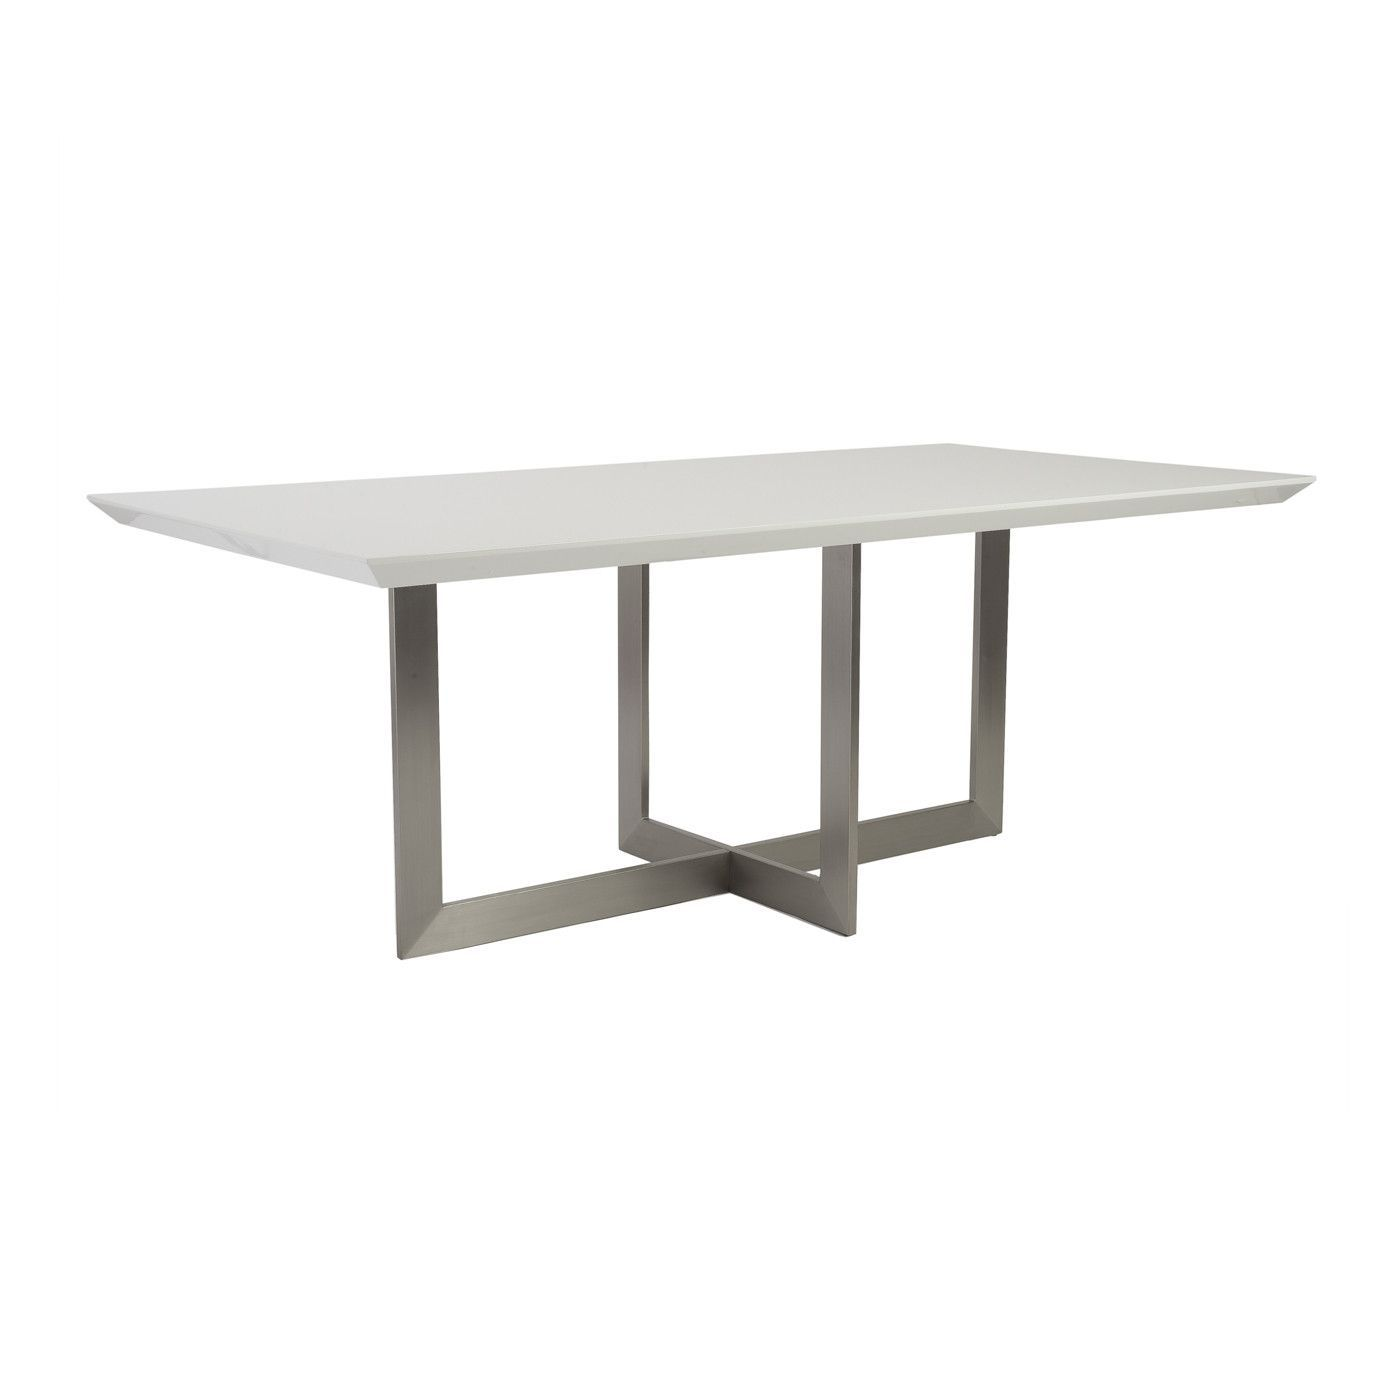 Tosca Dining Table White Lacquer Brushed Stainless Steel